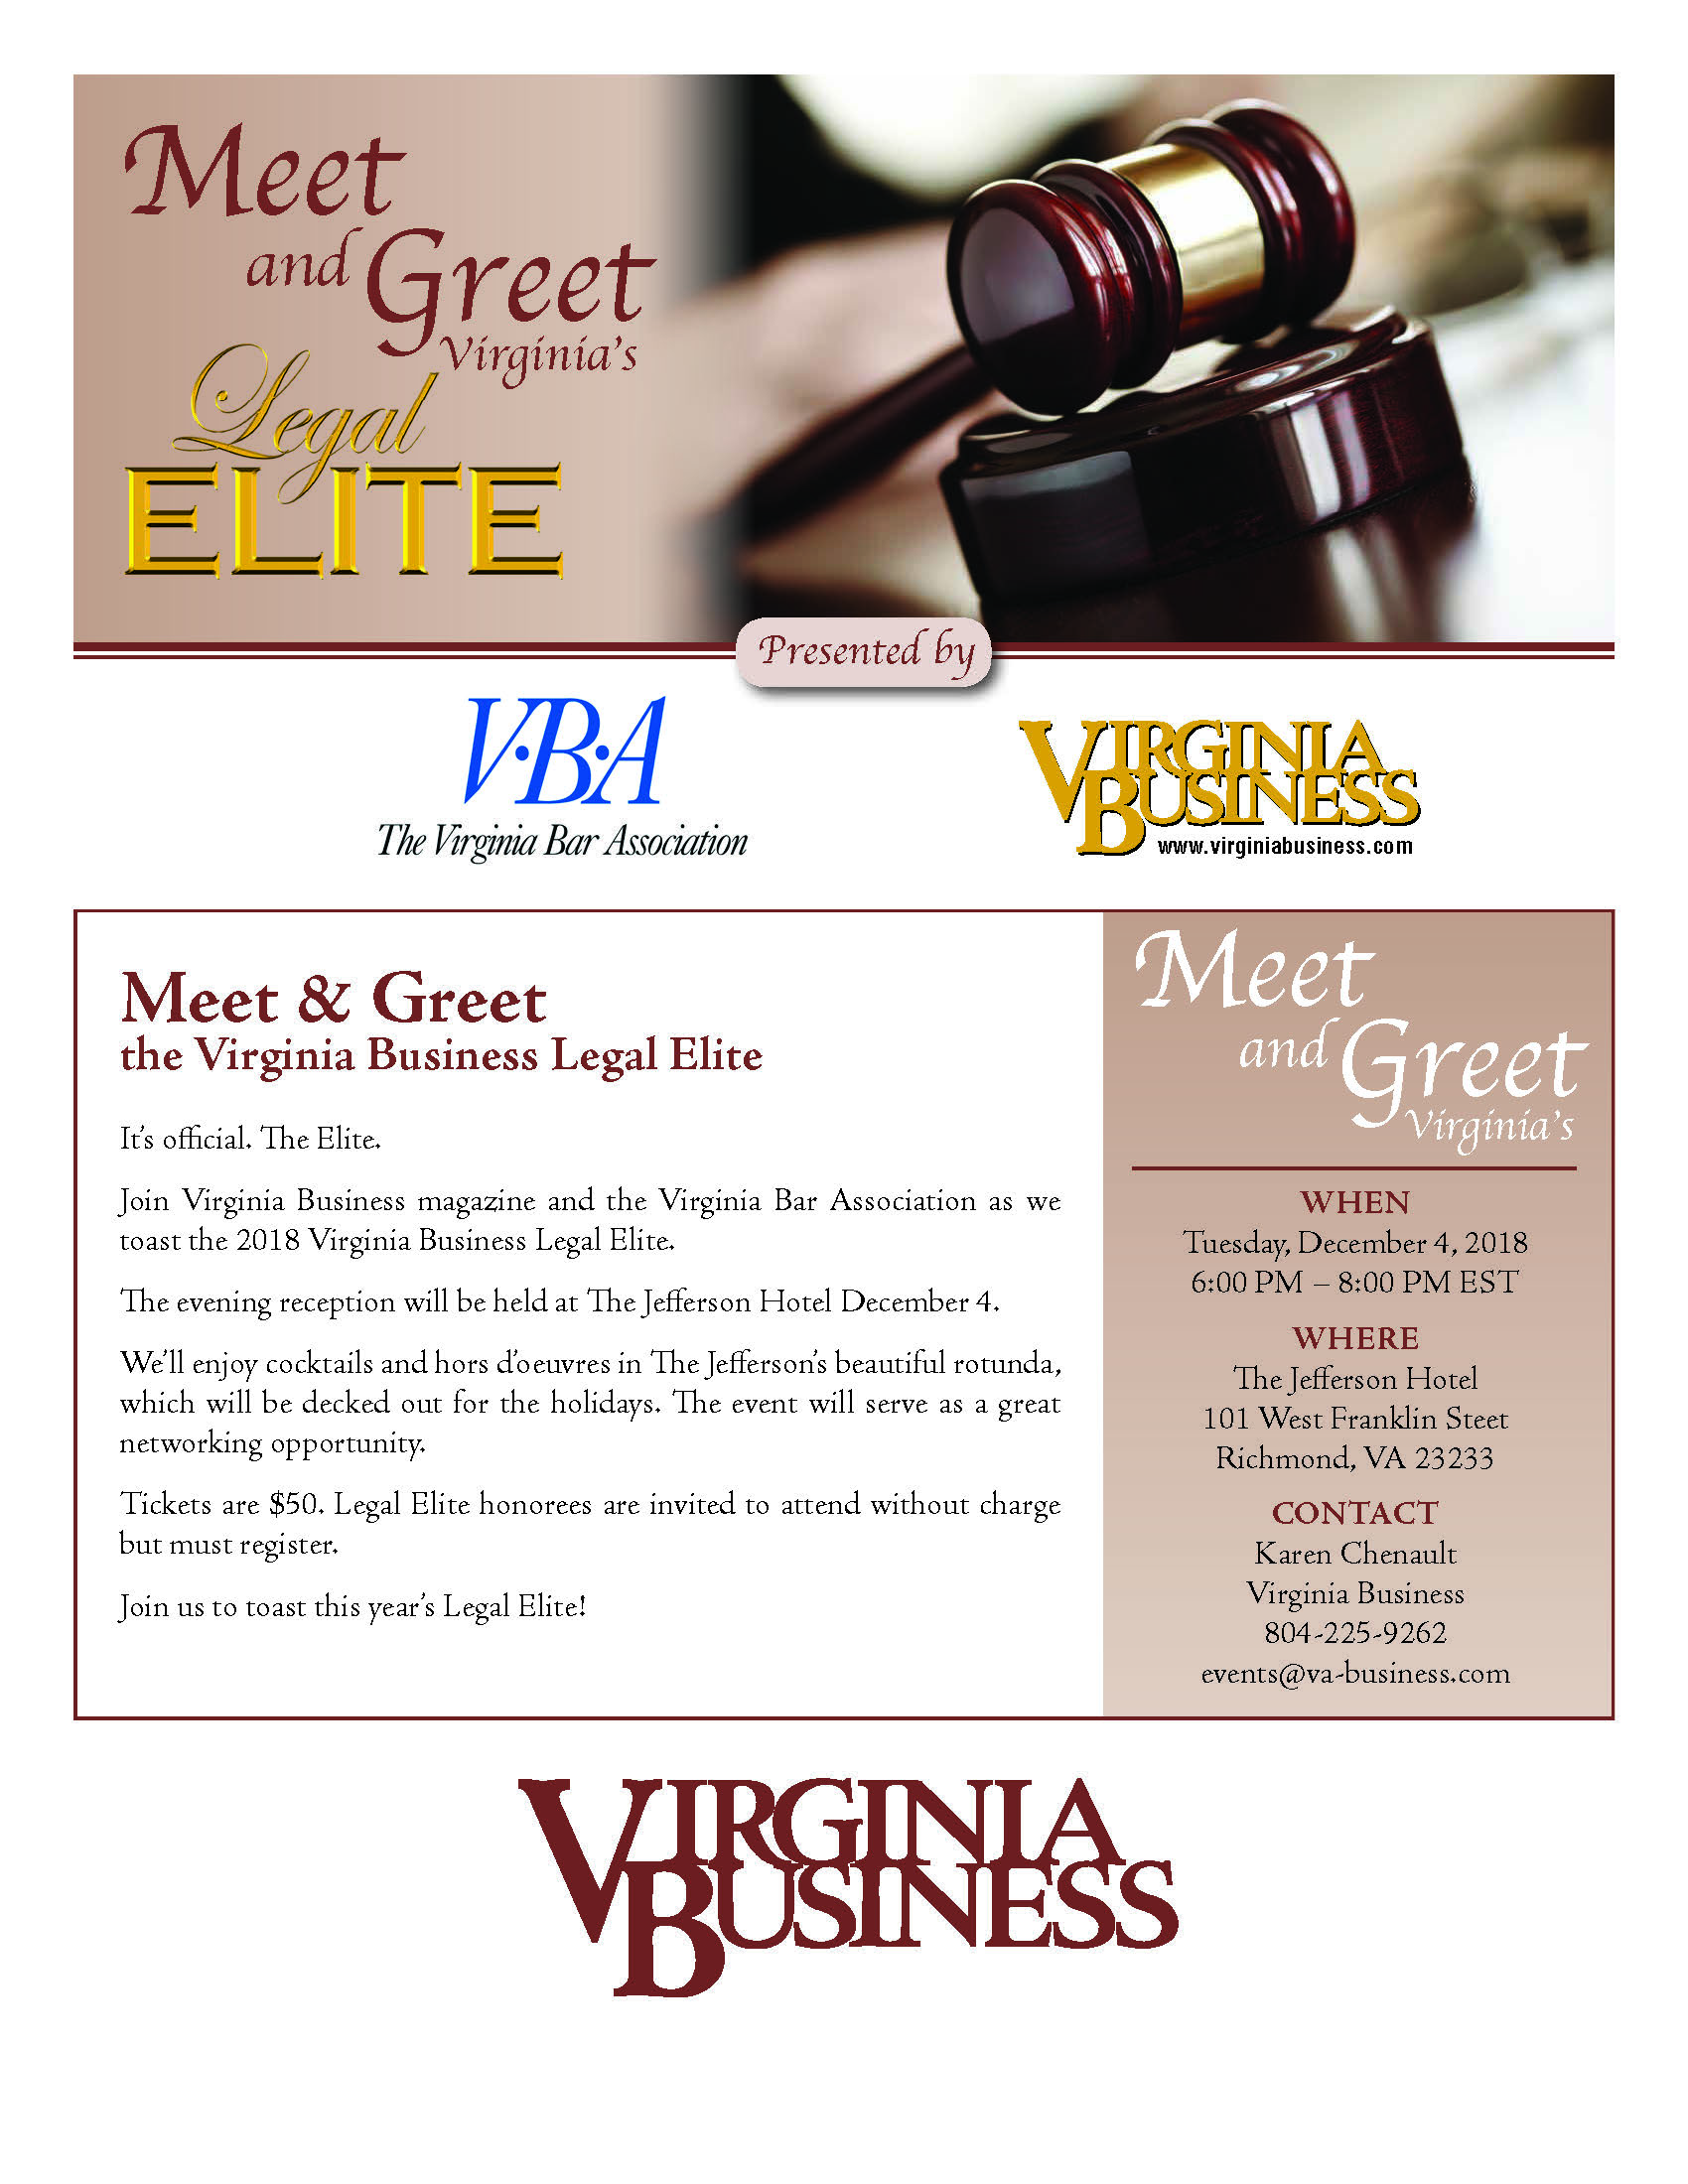 Meet & Greet the Legal Elite Dec. 4 in Richmond